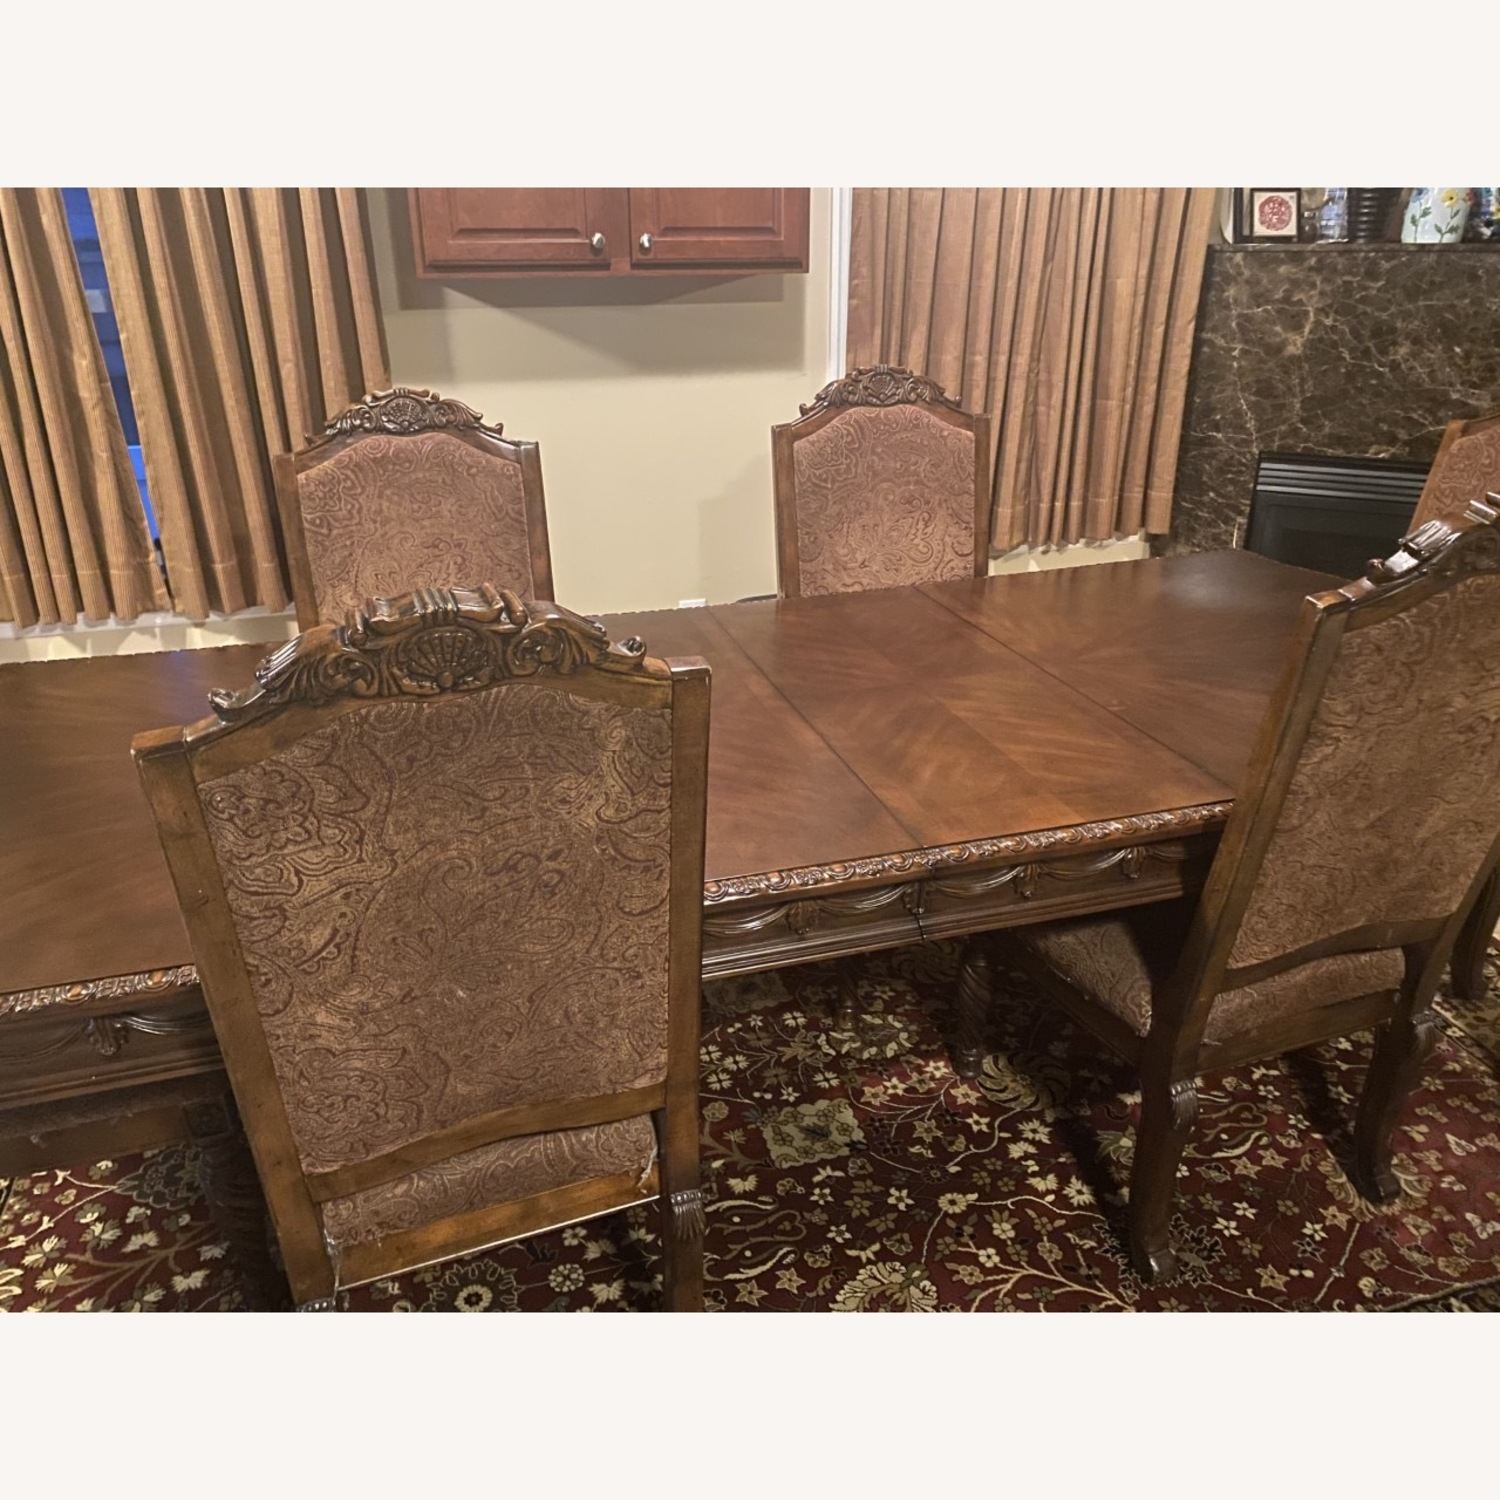 Ashely Furniture 6 pc Dining Table - image-2